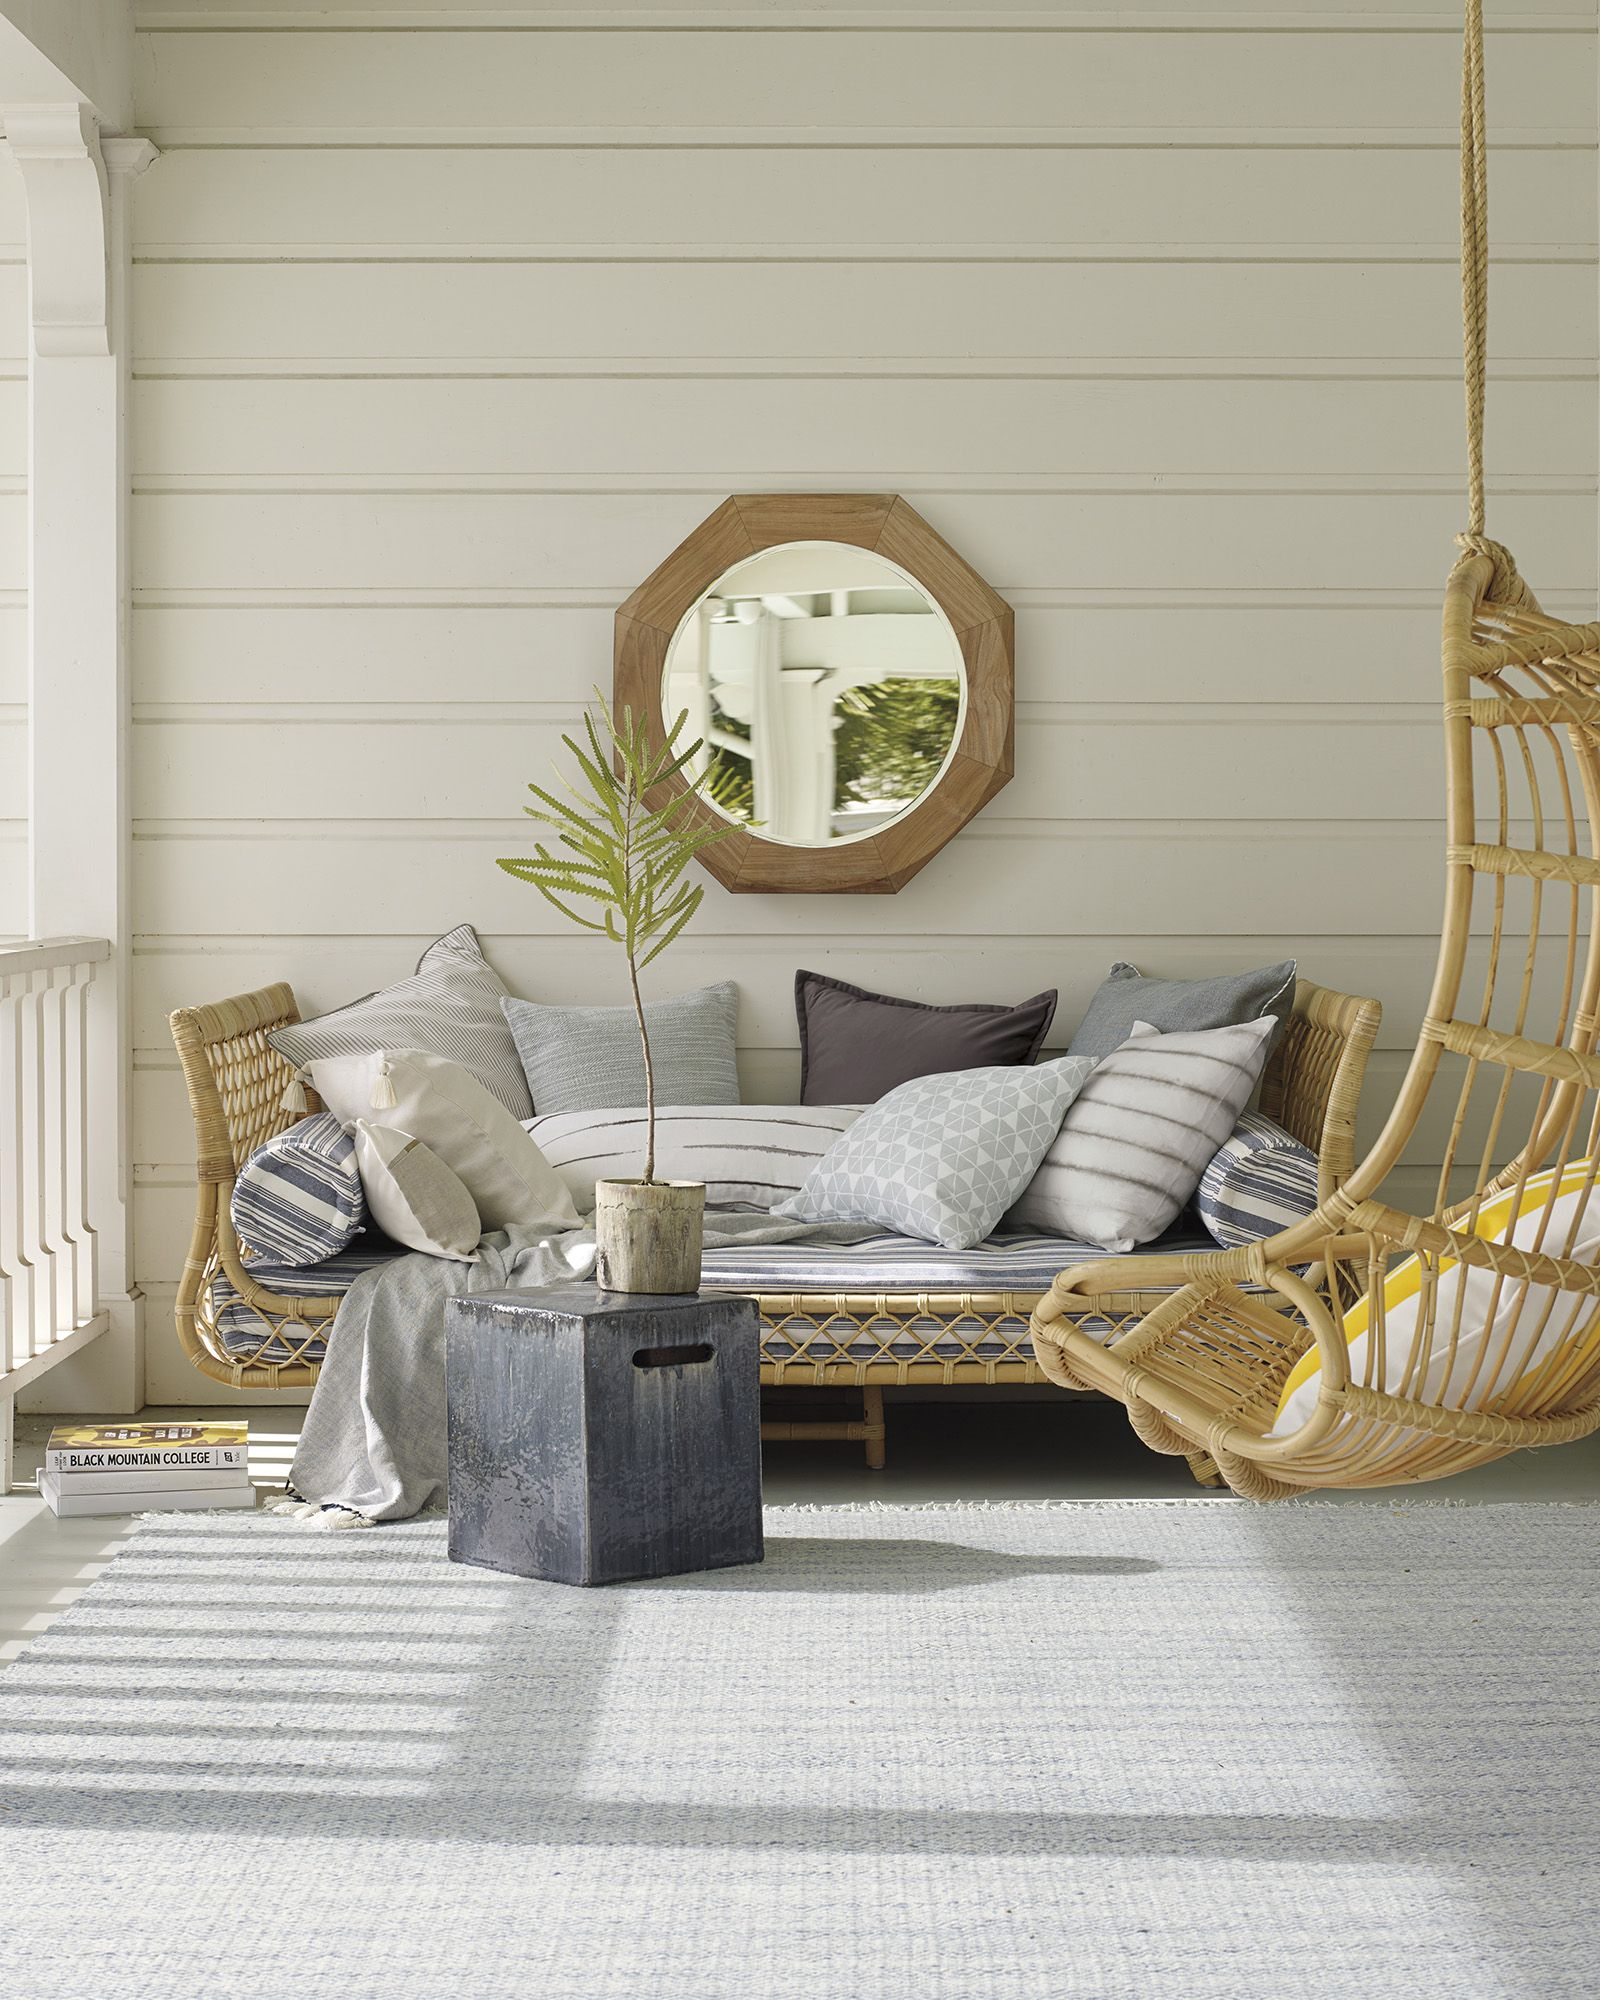 Front Porch Decorating Ideas With The Perfect Adirondack Chairs Our House Now A Home: Home Decor, Outdoor Daybed, Outdoor Mirror